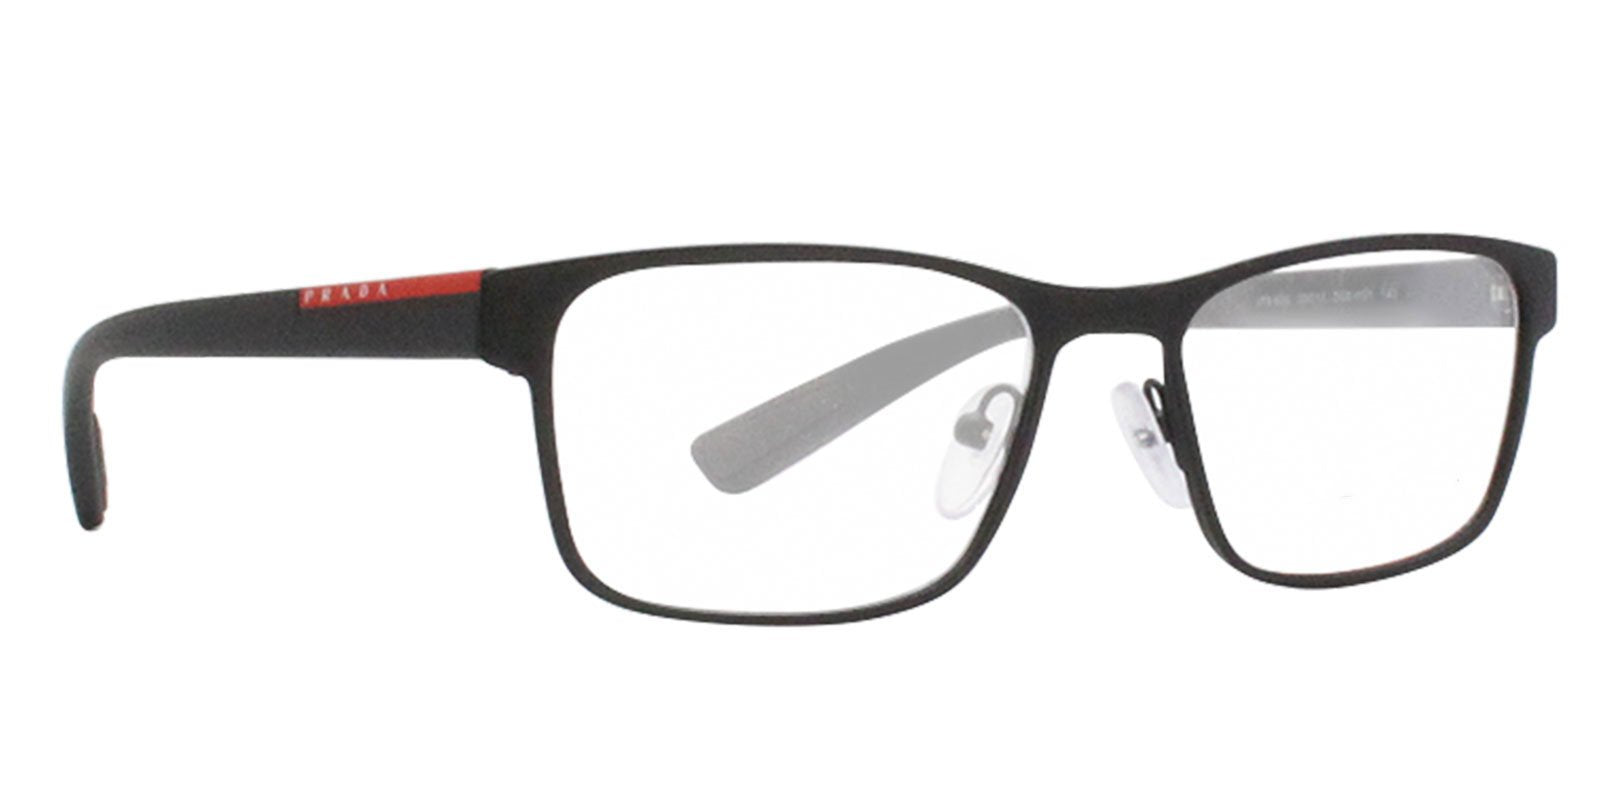 Prada Sport - VPS50G Black Rectangular Men Eyeglasses - 53mm-Eyeglasses-Designer Eyes